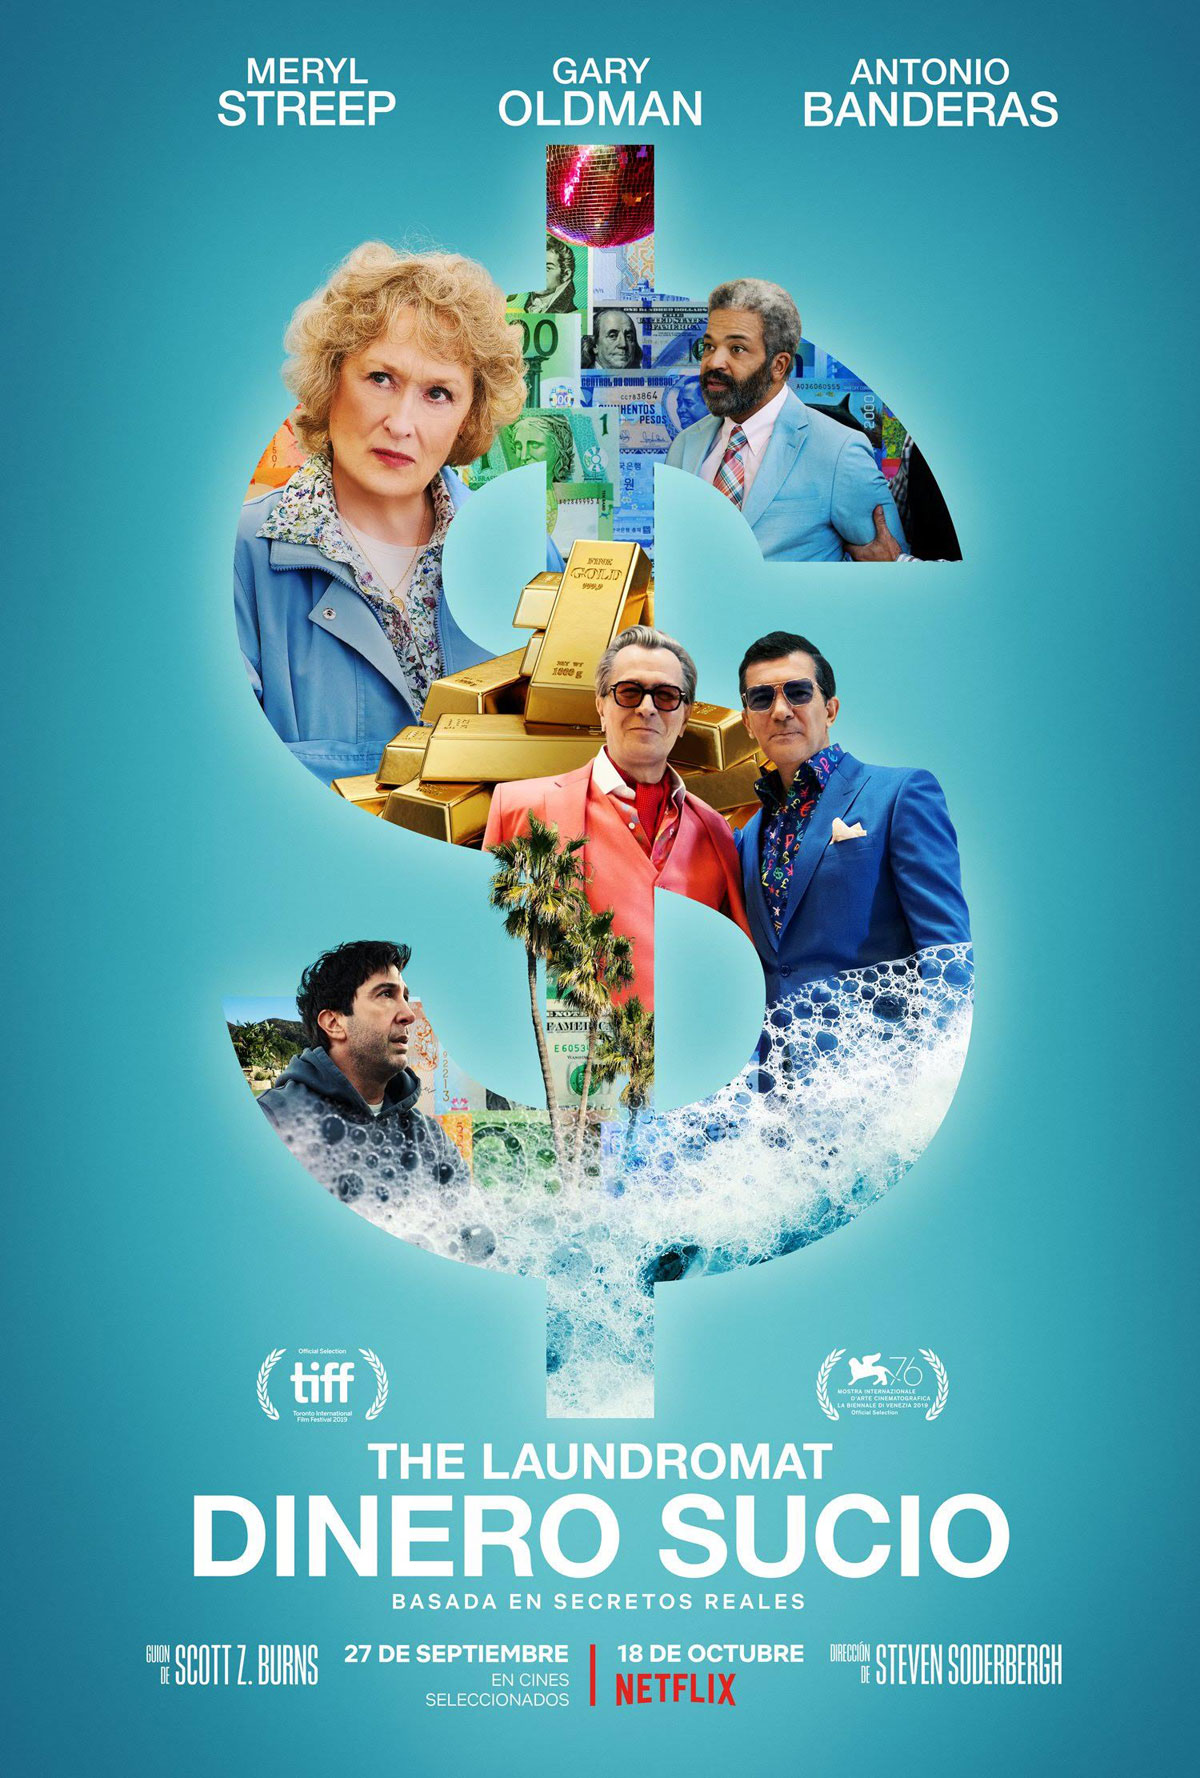 Photo of 'The Laundromat: dinero sucio' una historia basada en hechos reales